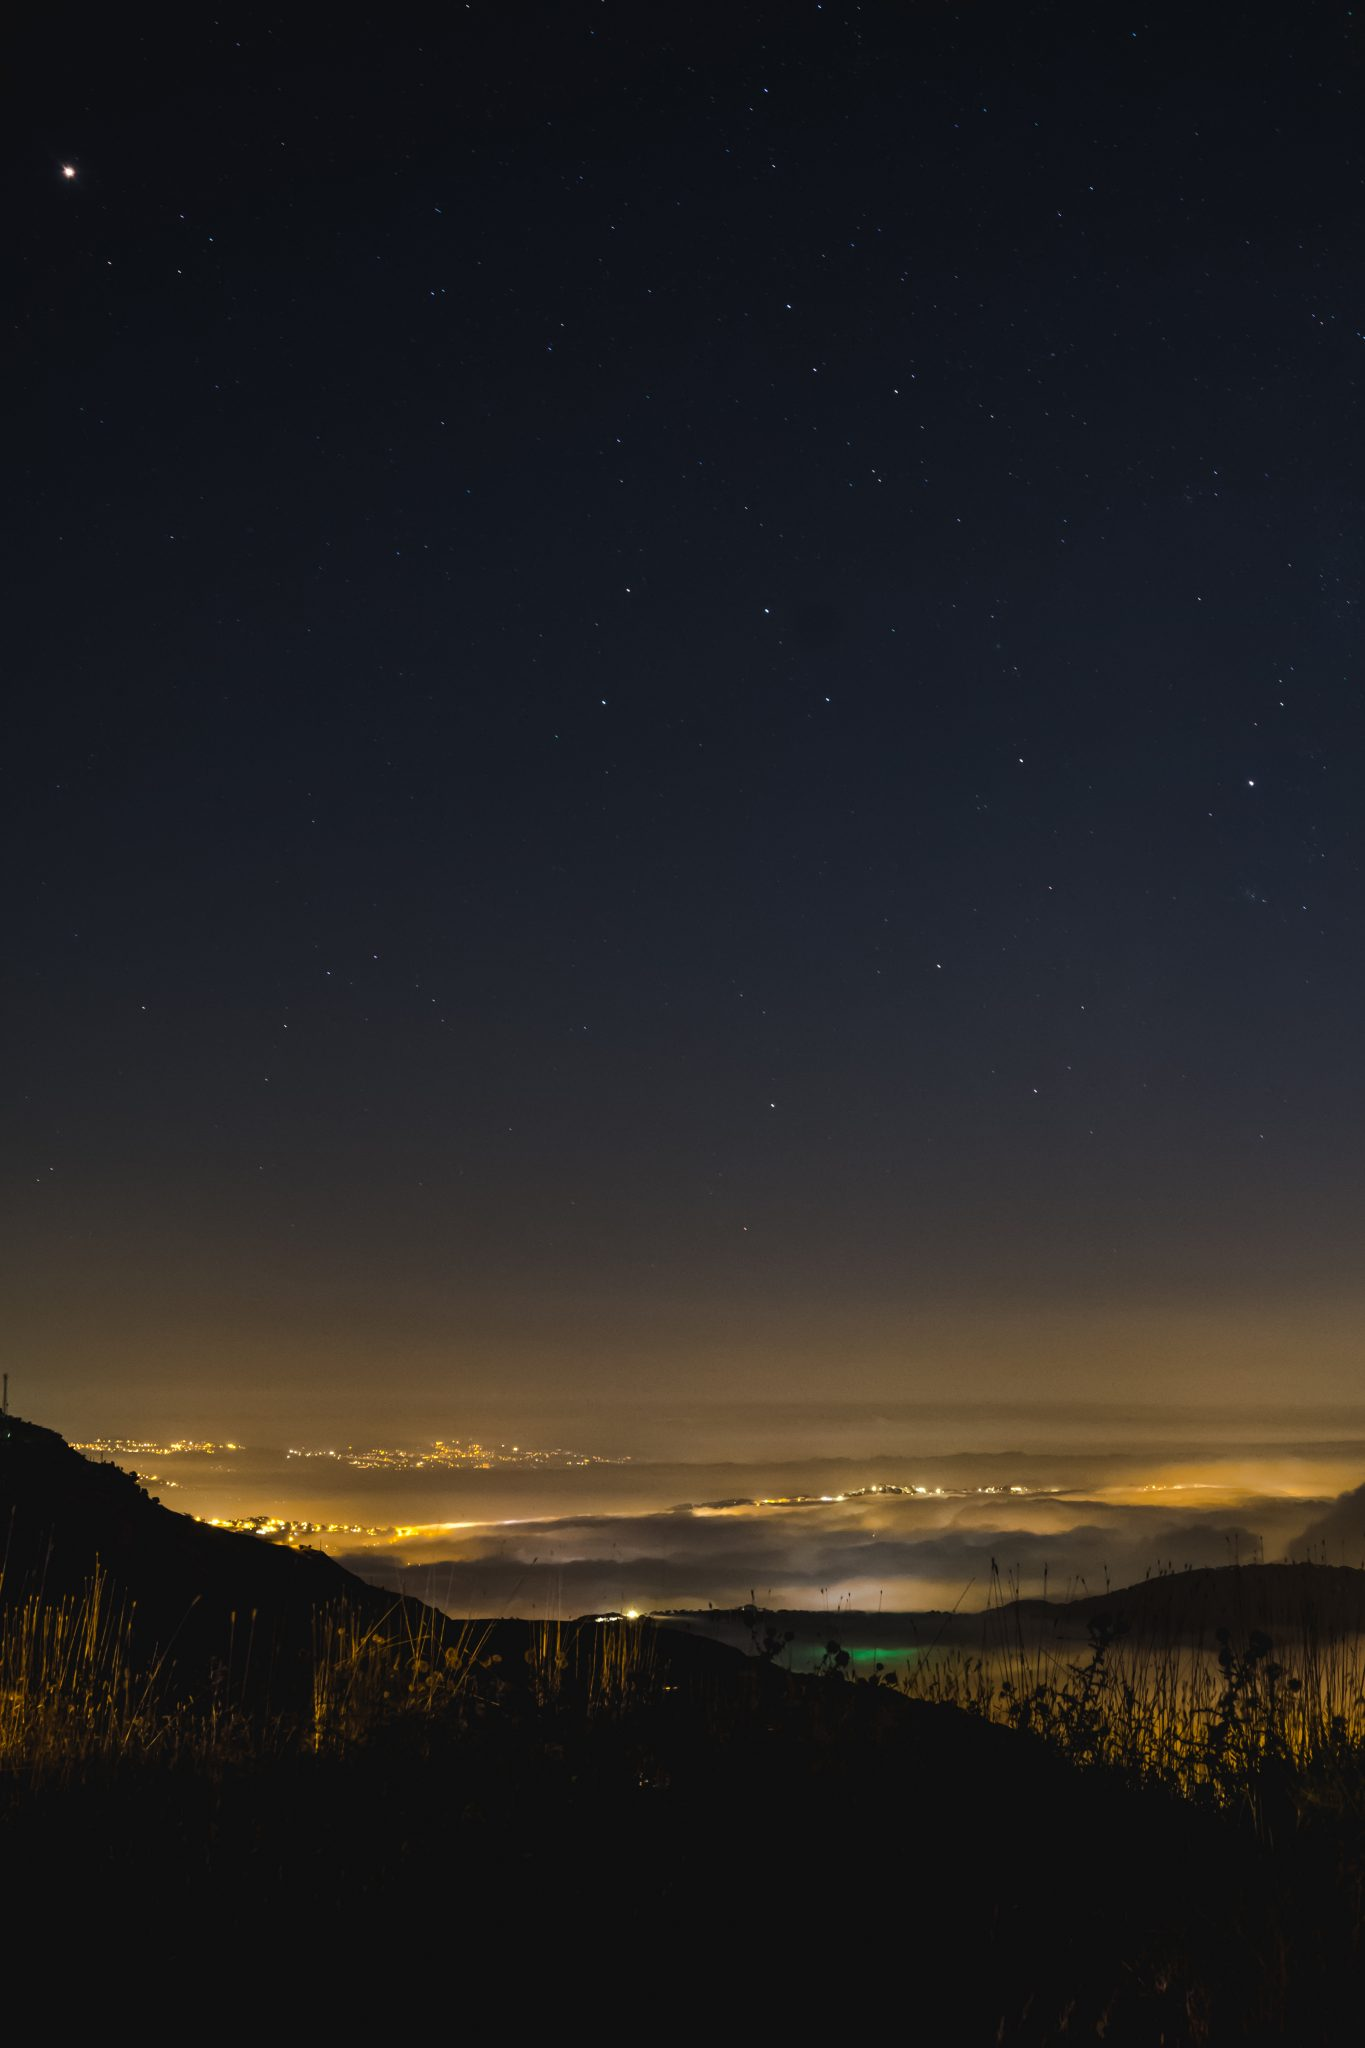 Panoramic view of the lebanese mountain at night from above the clouds photo by Jo Kassis